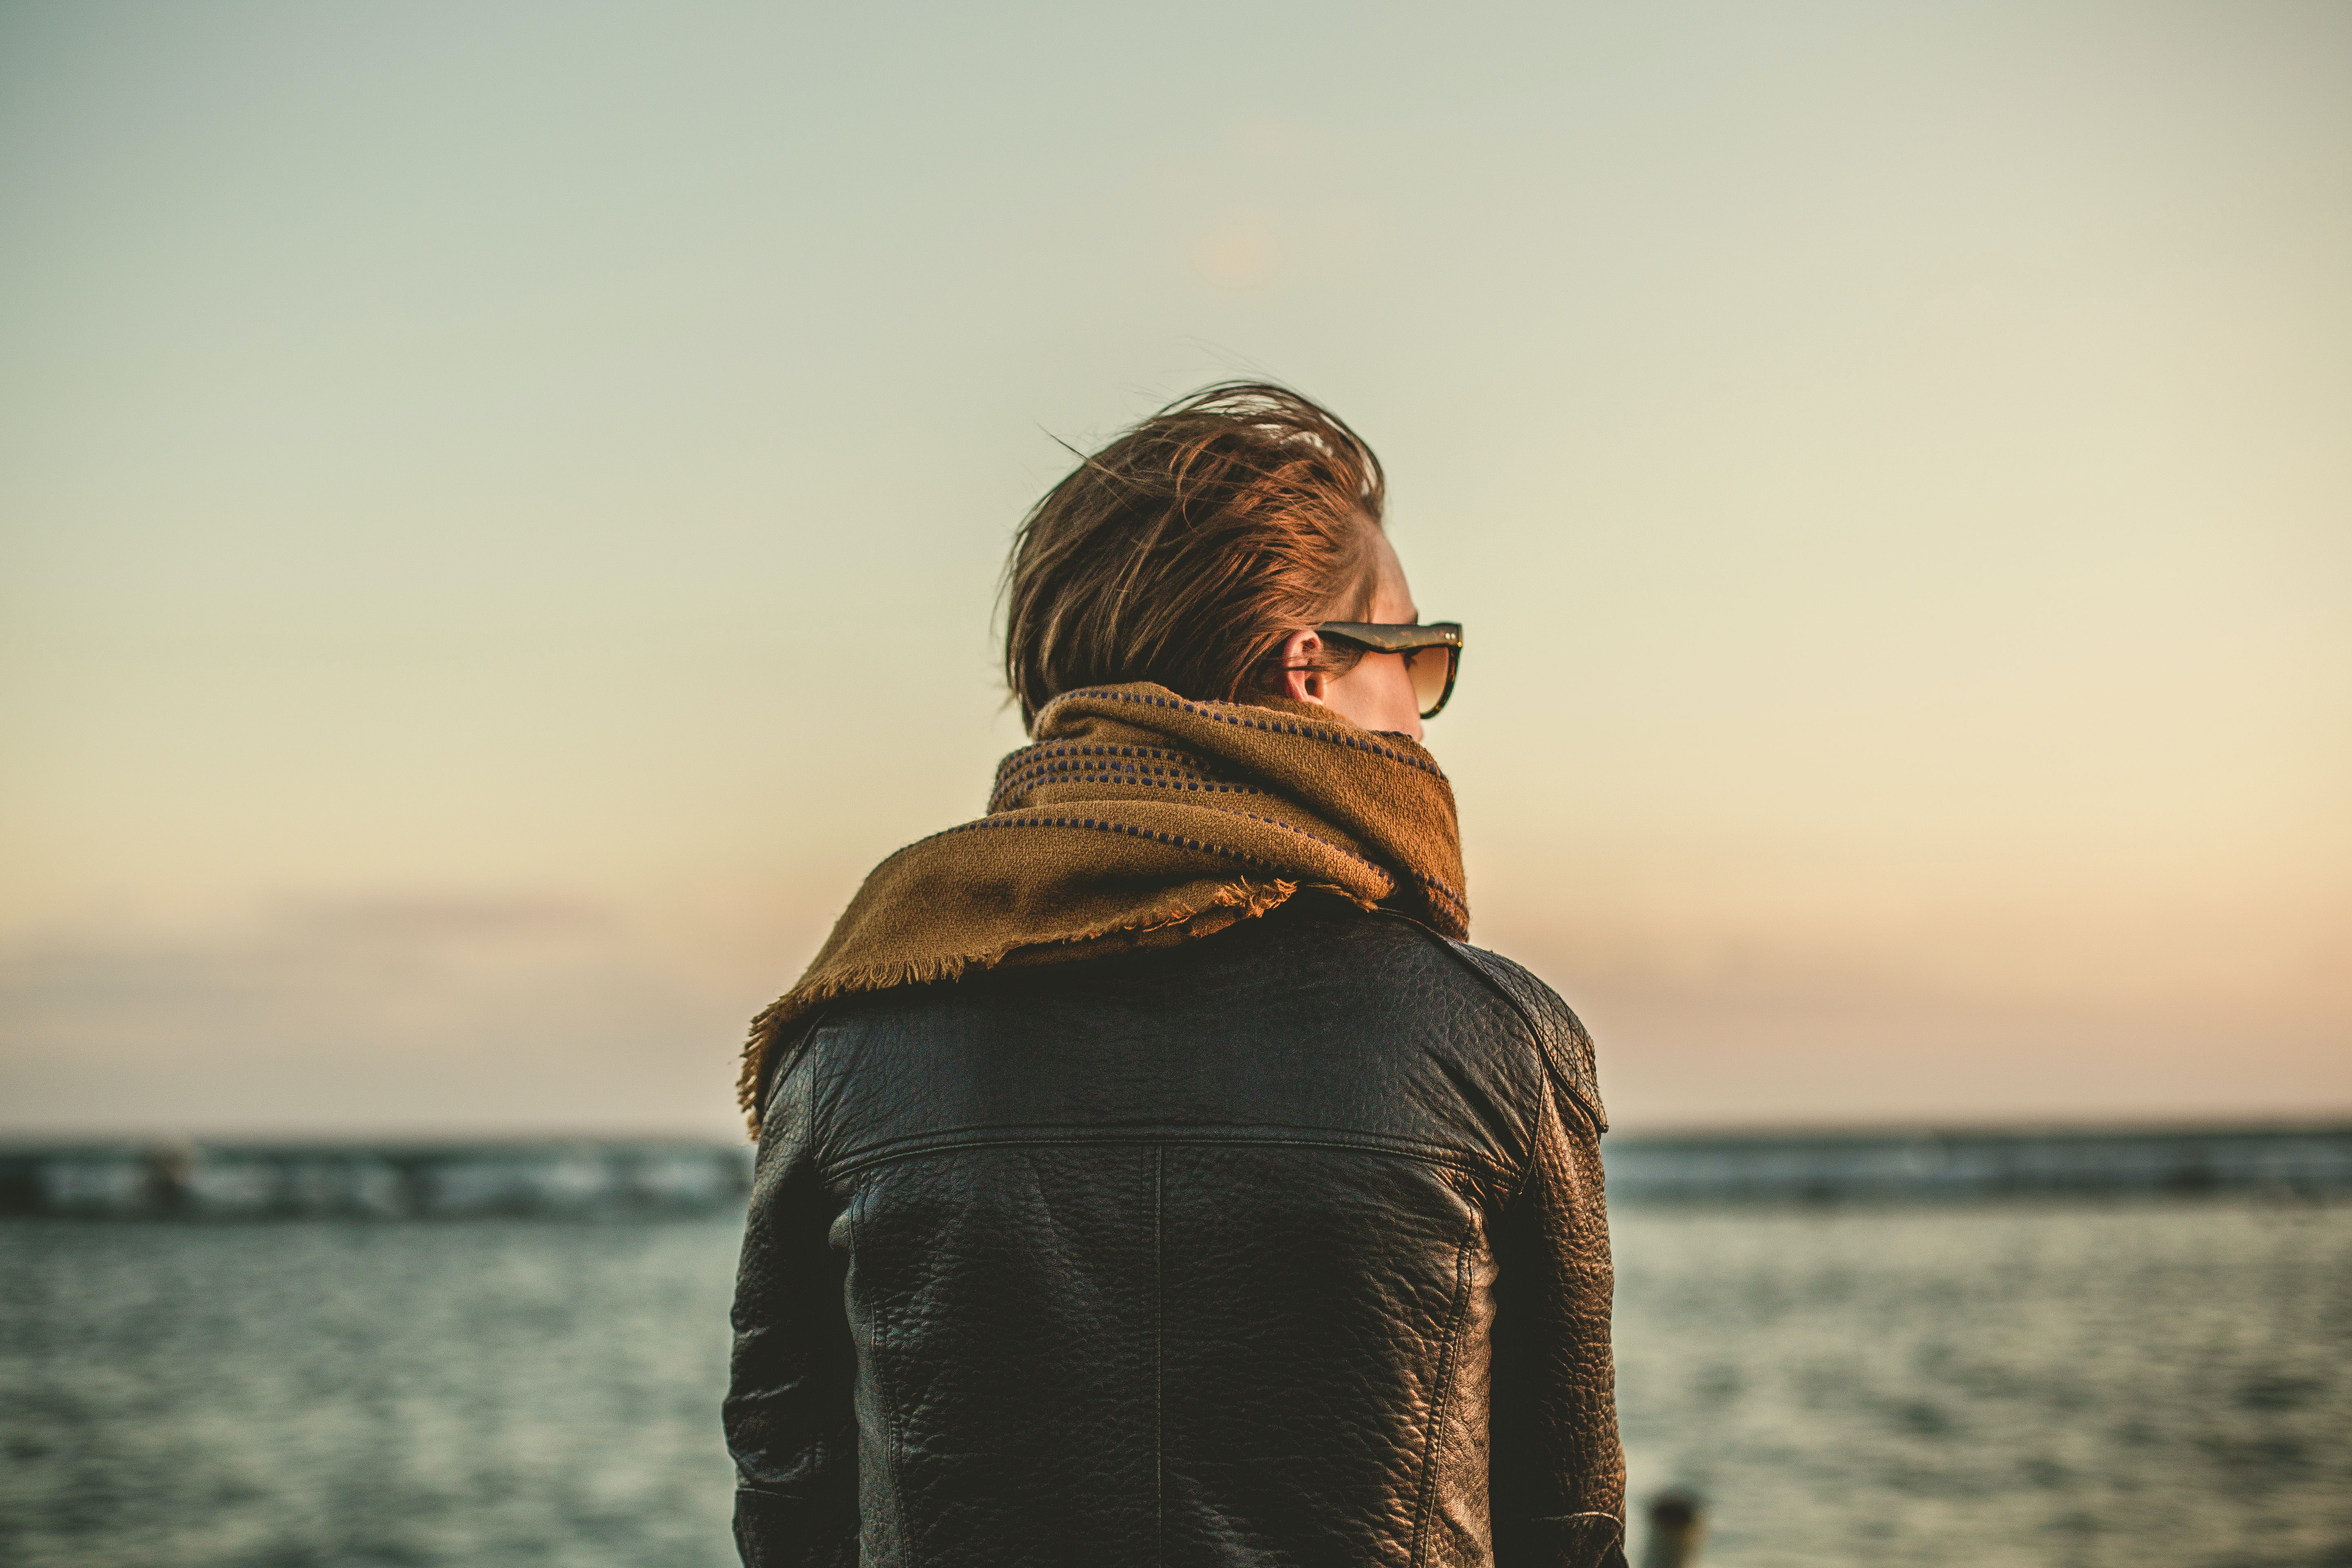 focus photo of person wearing black leather jacket with brown scarf near sea during daytime